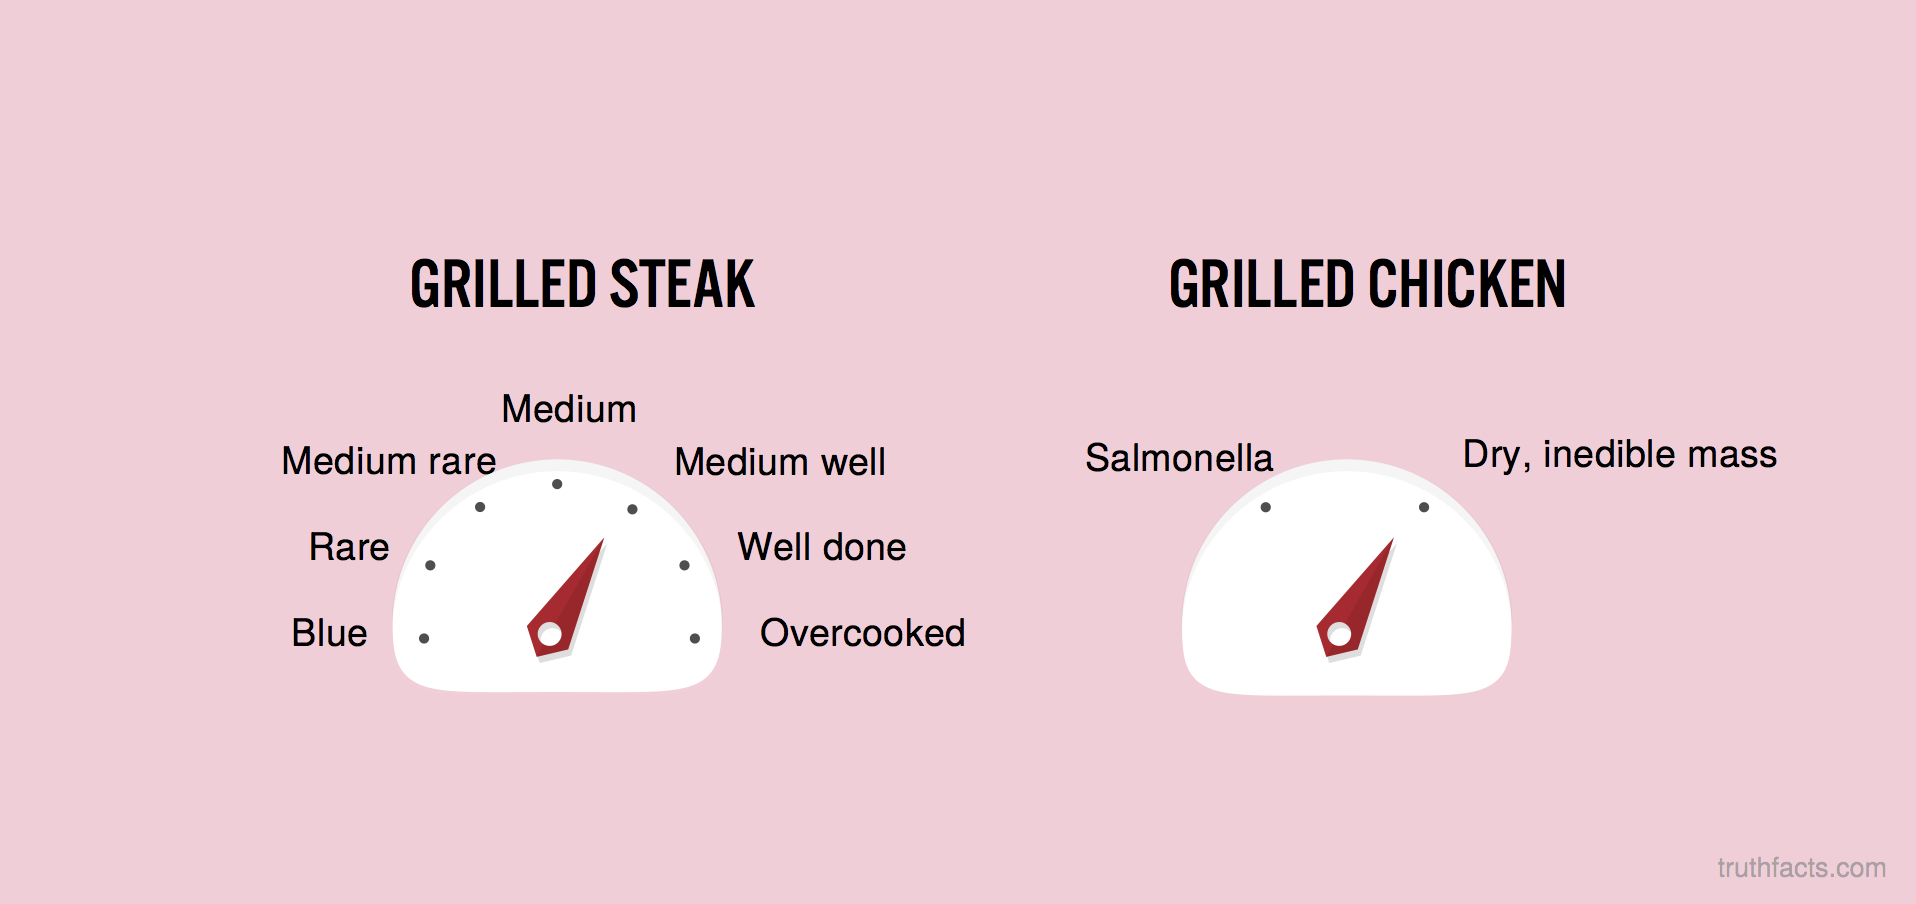 Grilled steak vs. chicken